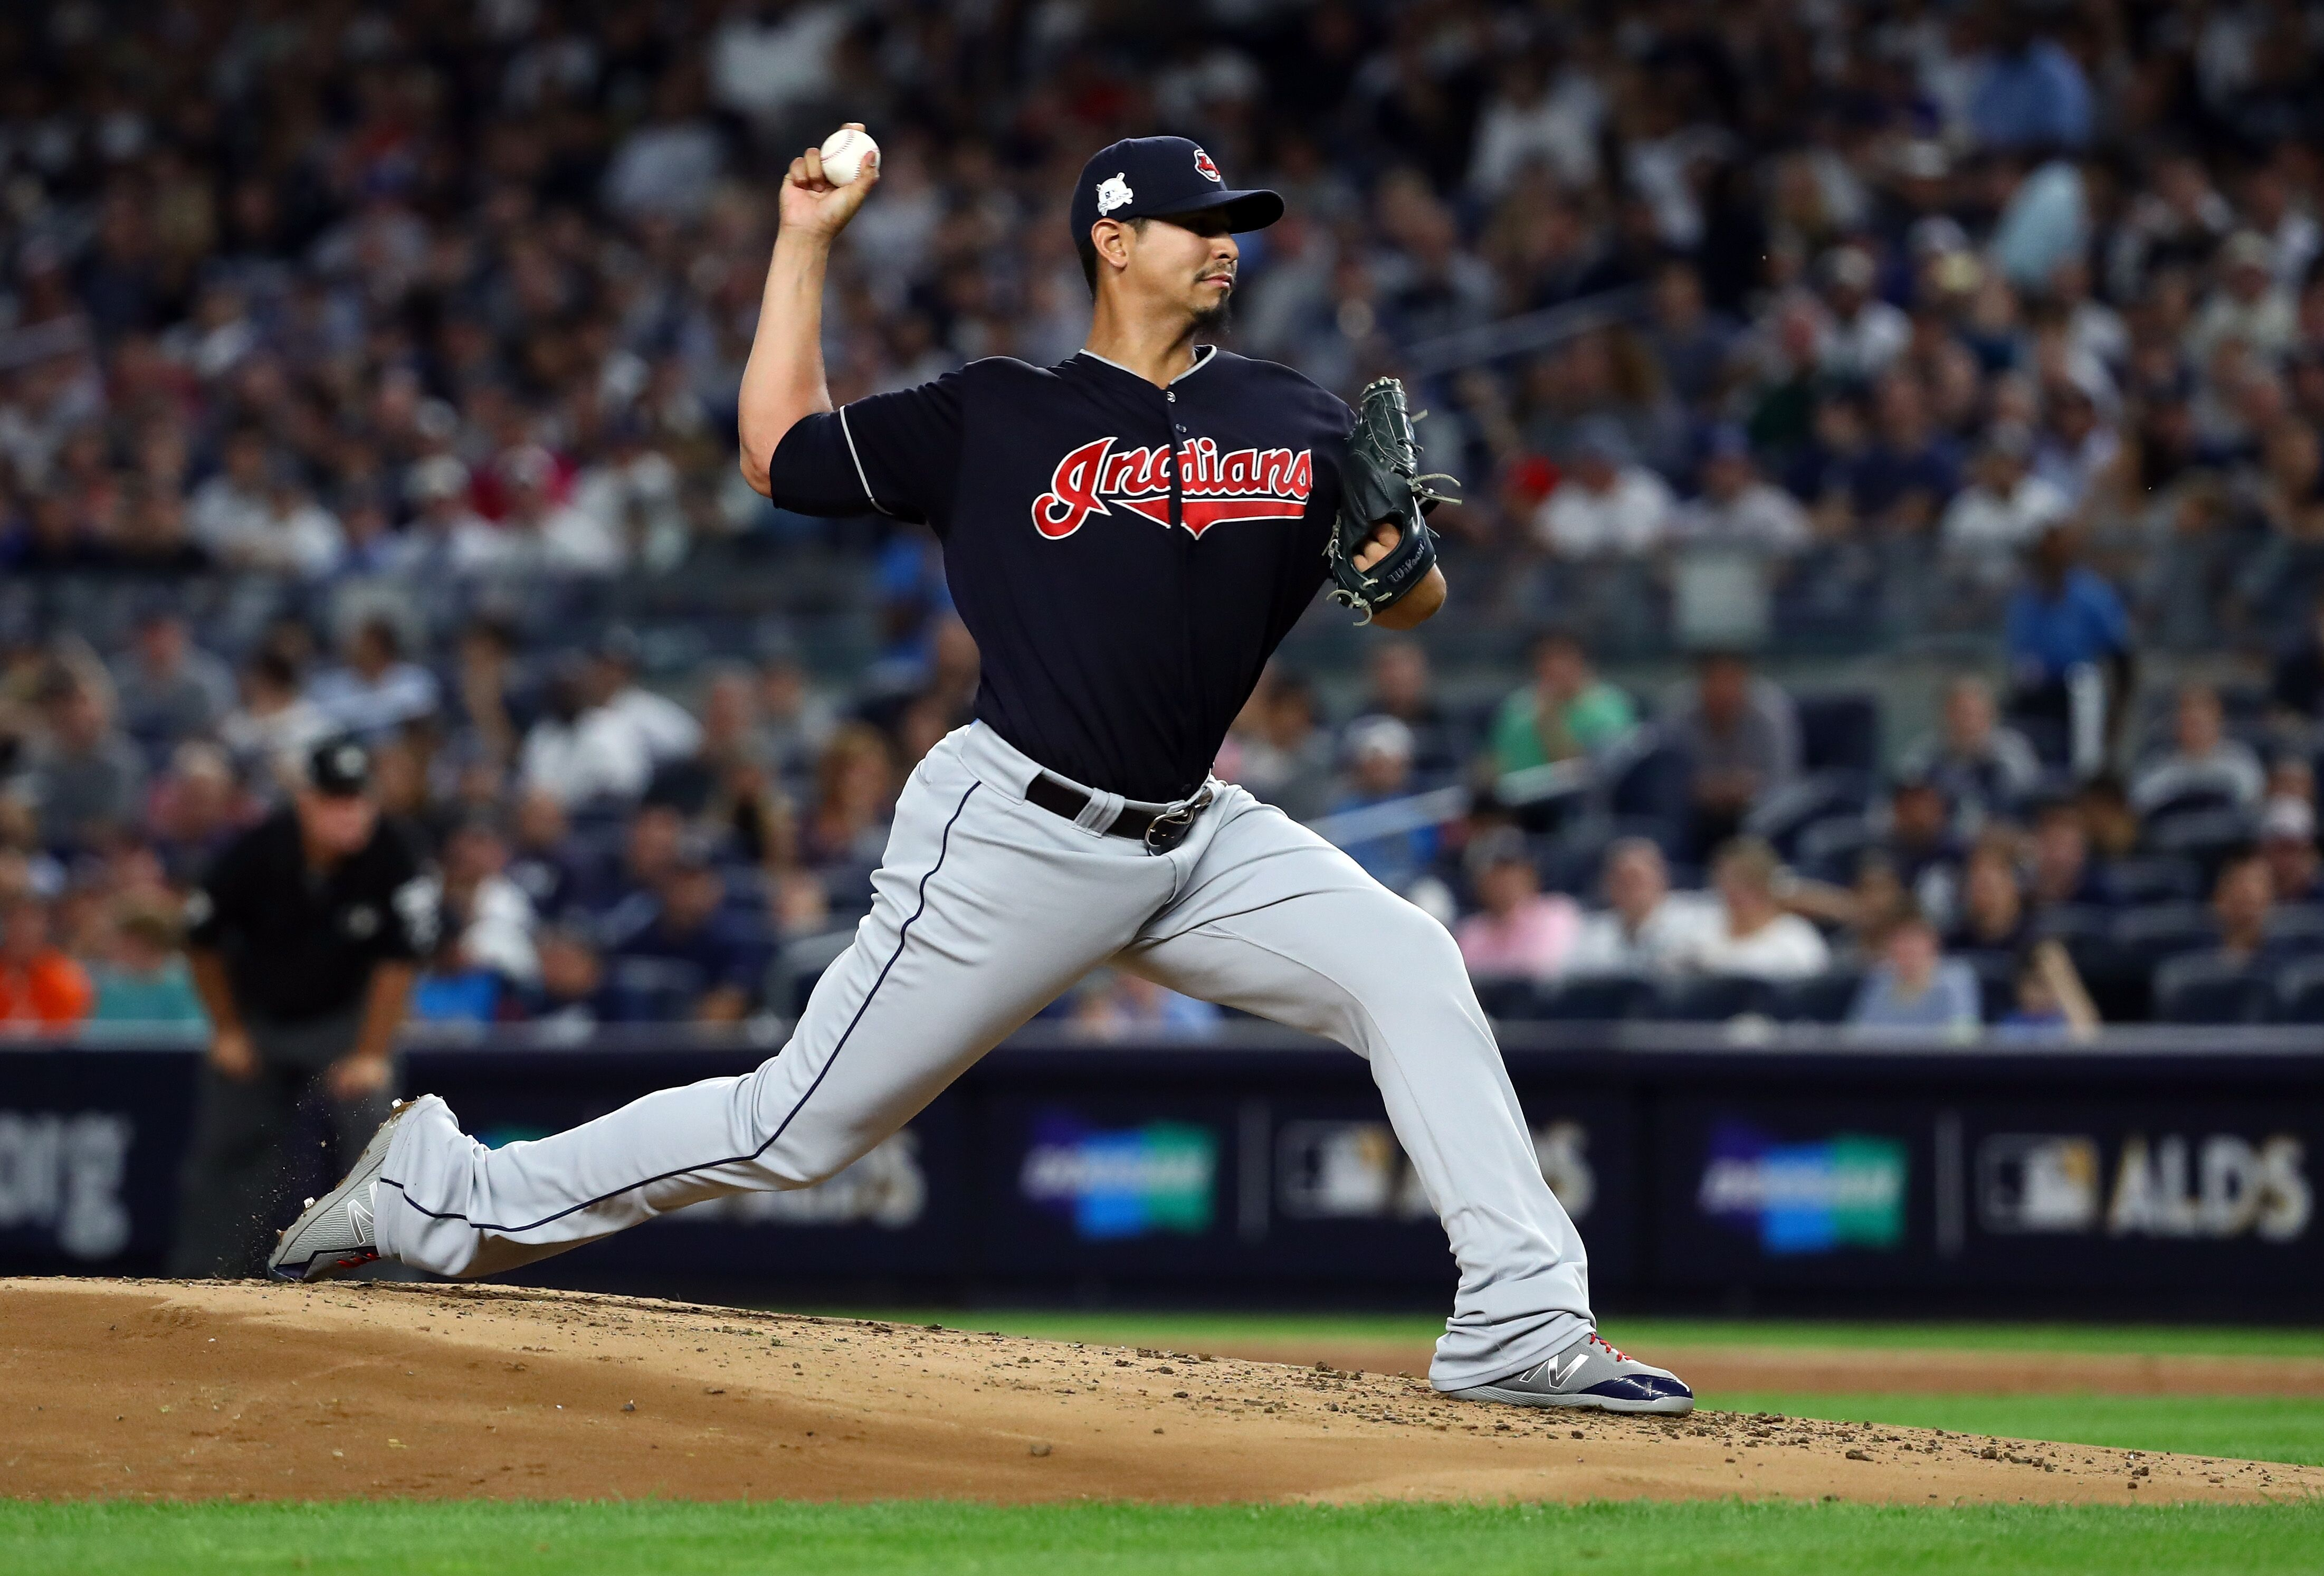 Cleveland Indians Carlos Carrasco and his great work off the field